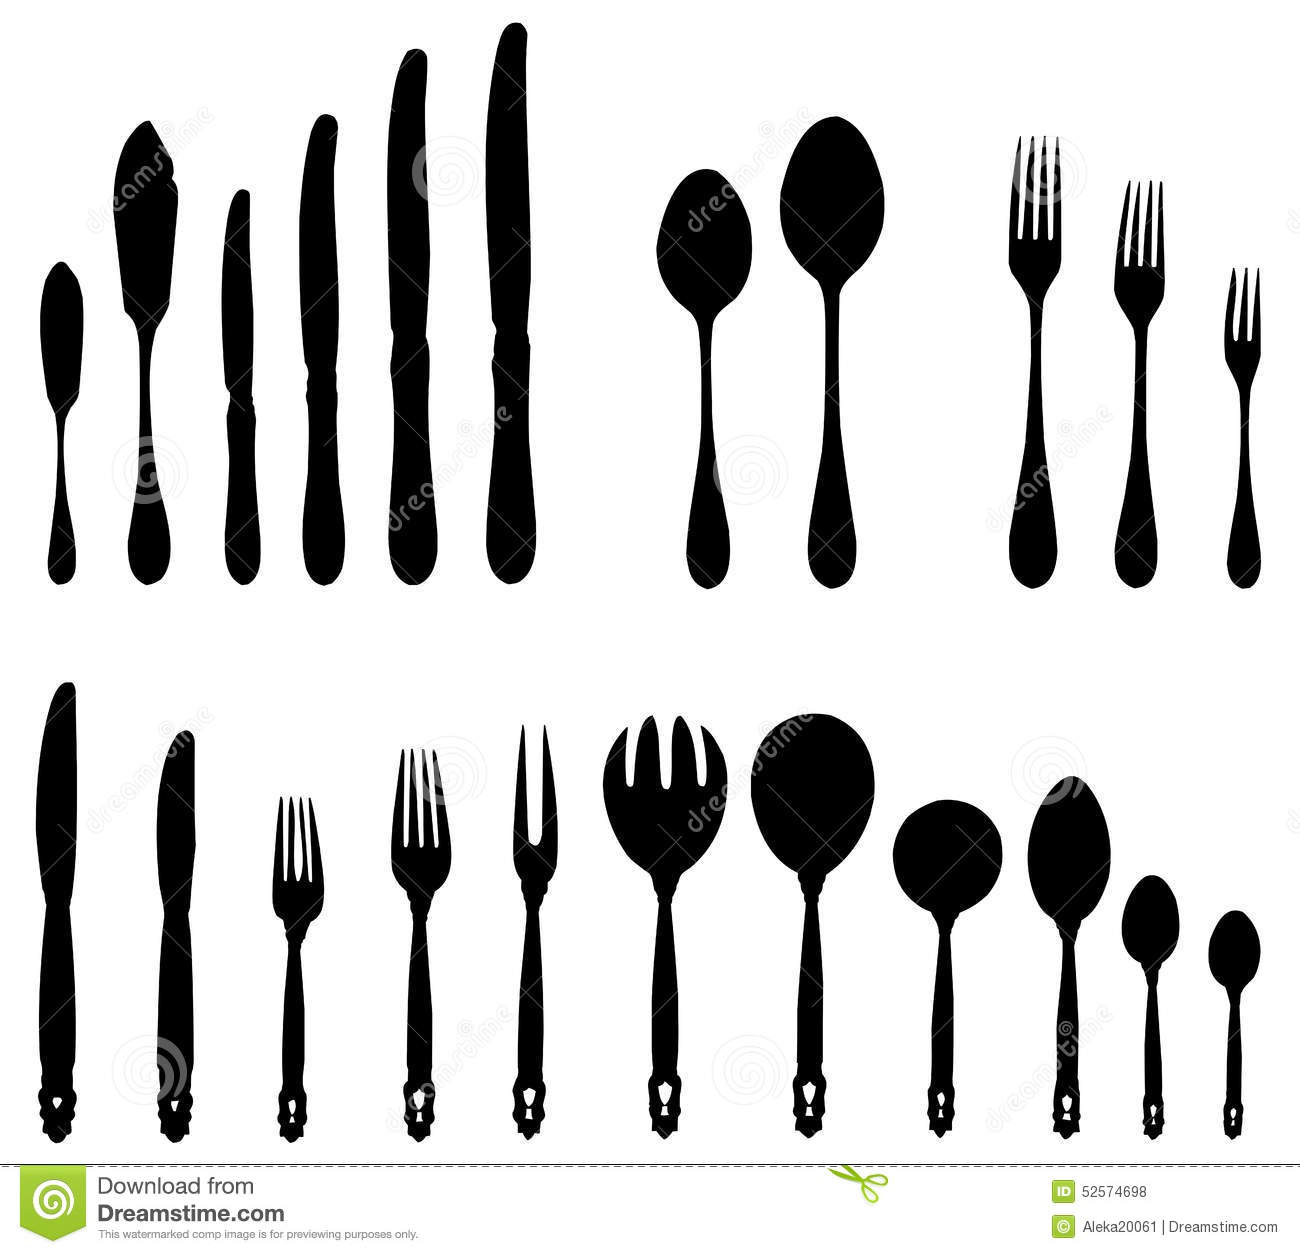 Cutlery - forks spoons knives. Cutlery of various sizes and for various purposes  sc 1 st  Dreamstime.com & Table Manners Stock Illustrations u2013 32 Table Manners Stock ...